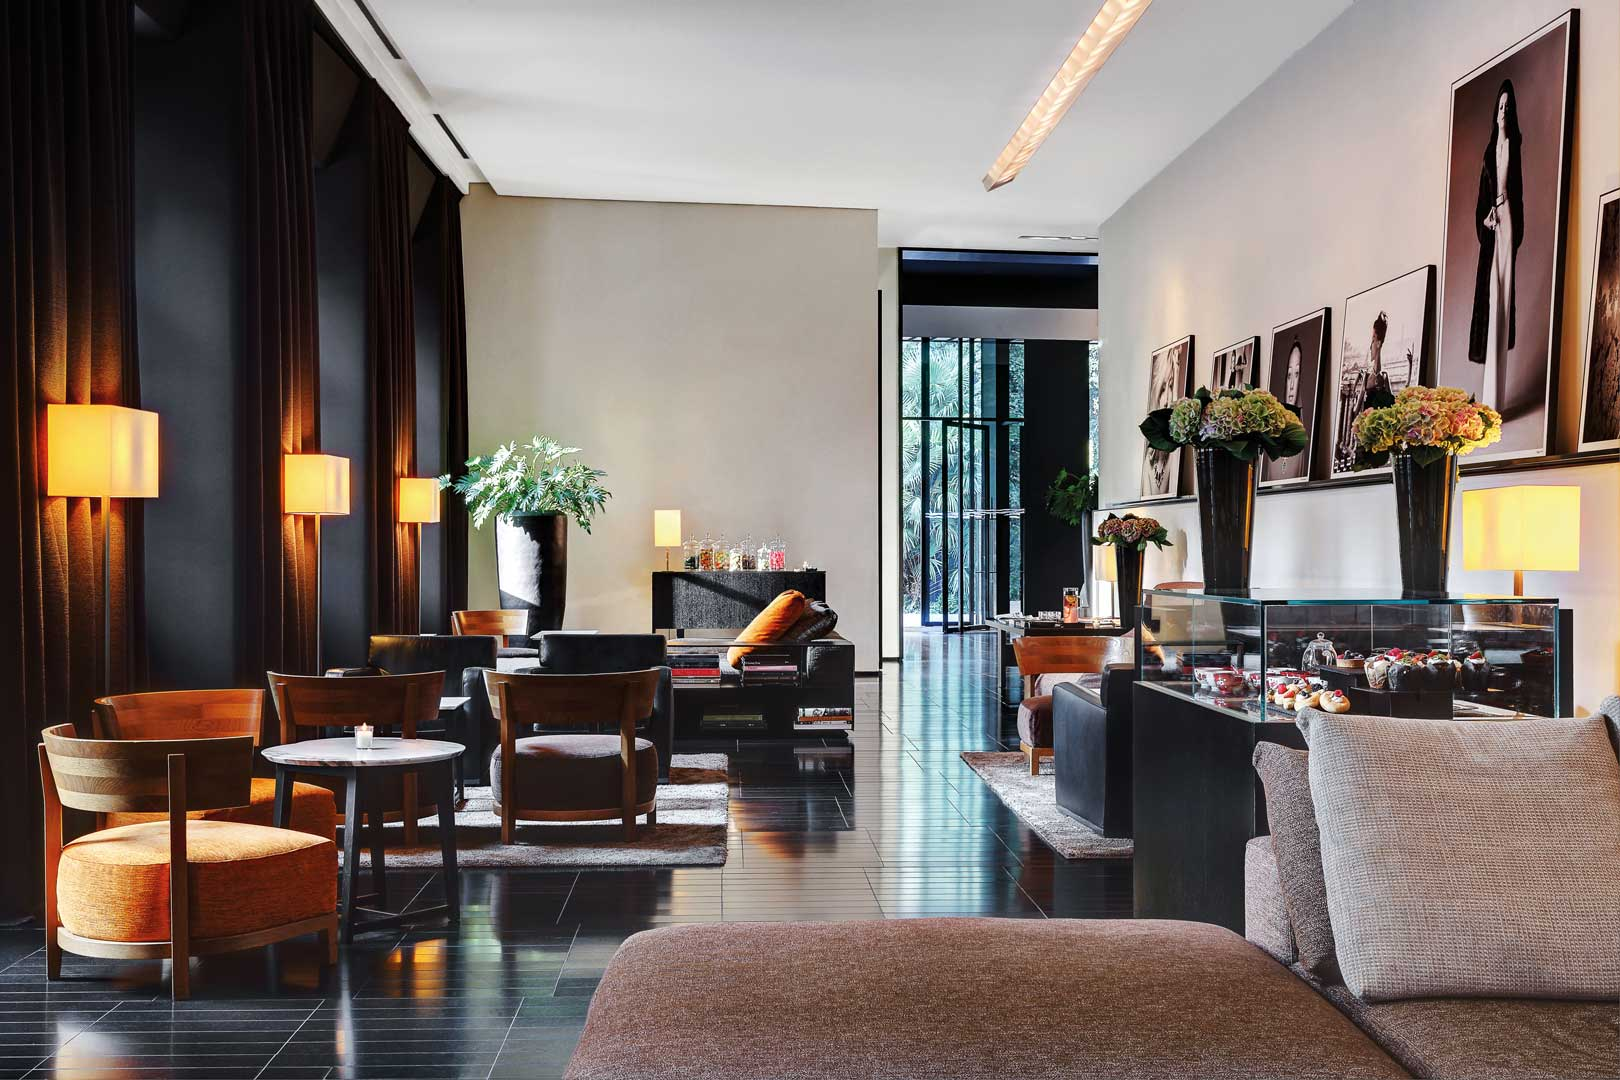 Bar bulgari hotels resorts flawless milano for Hotel design italie